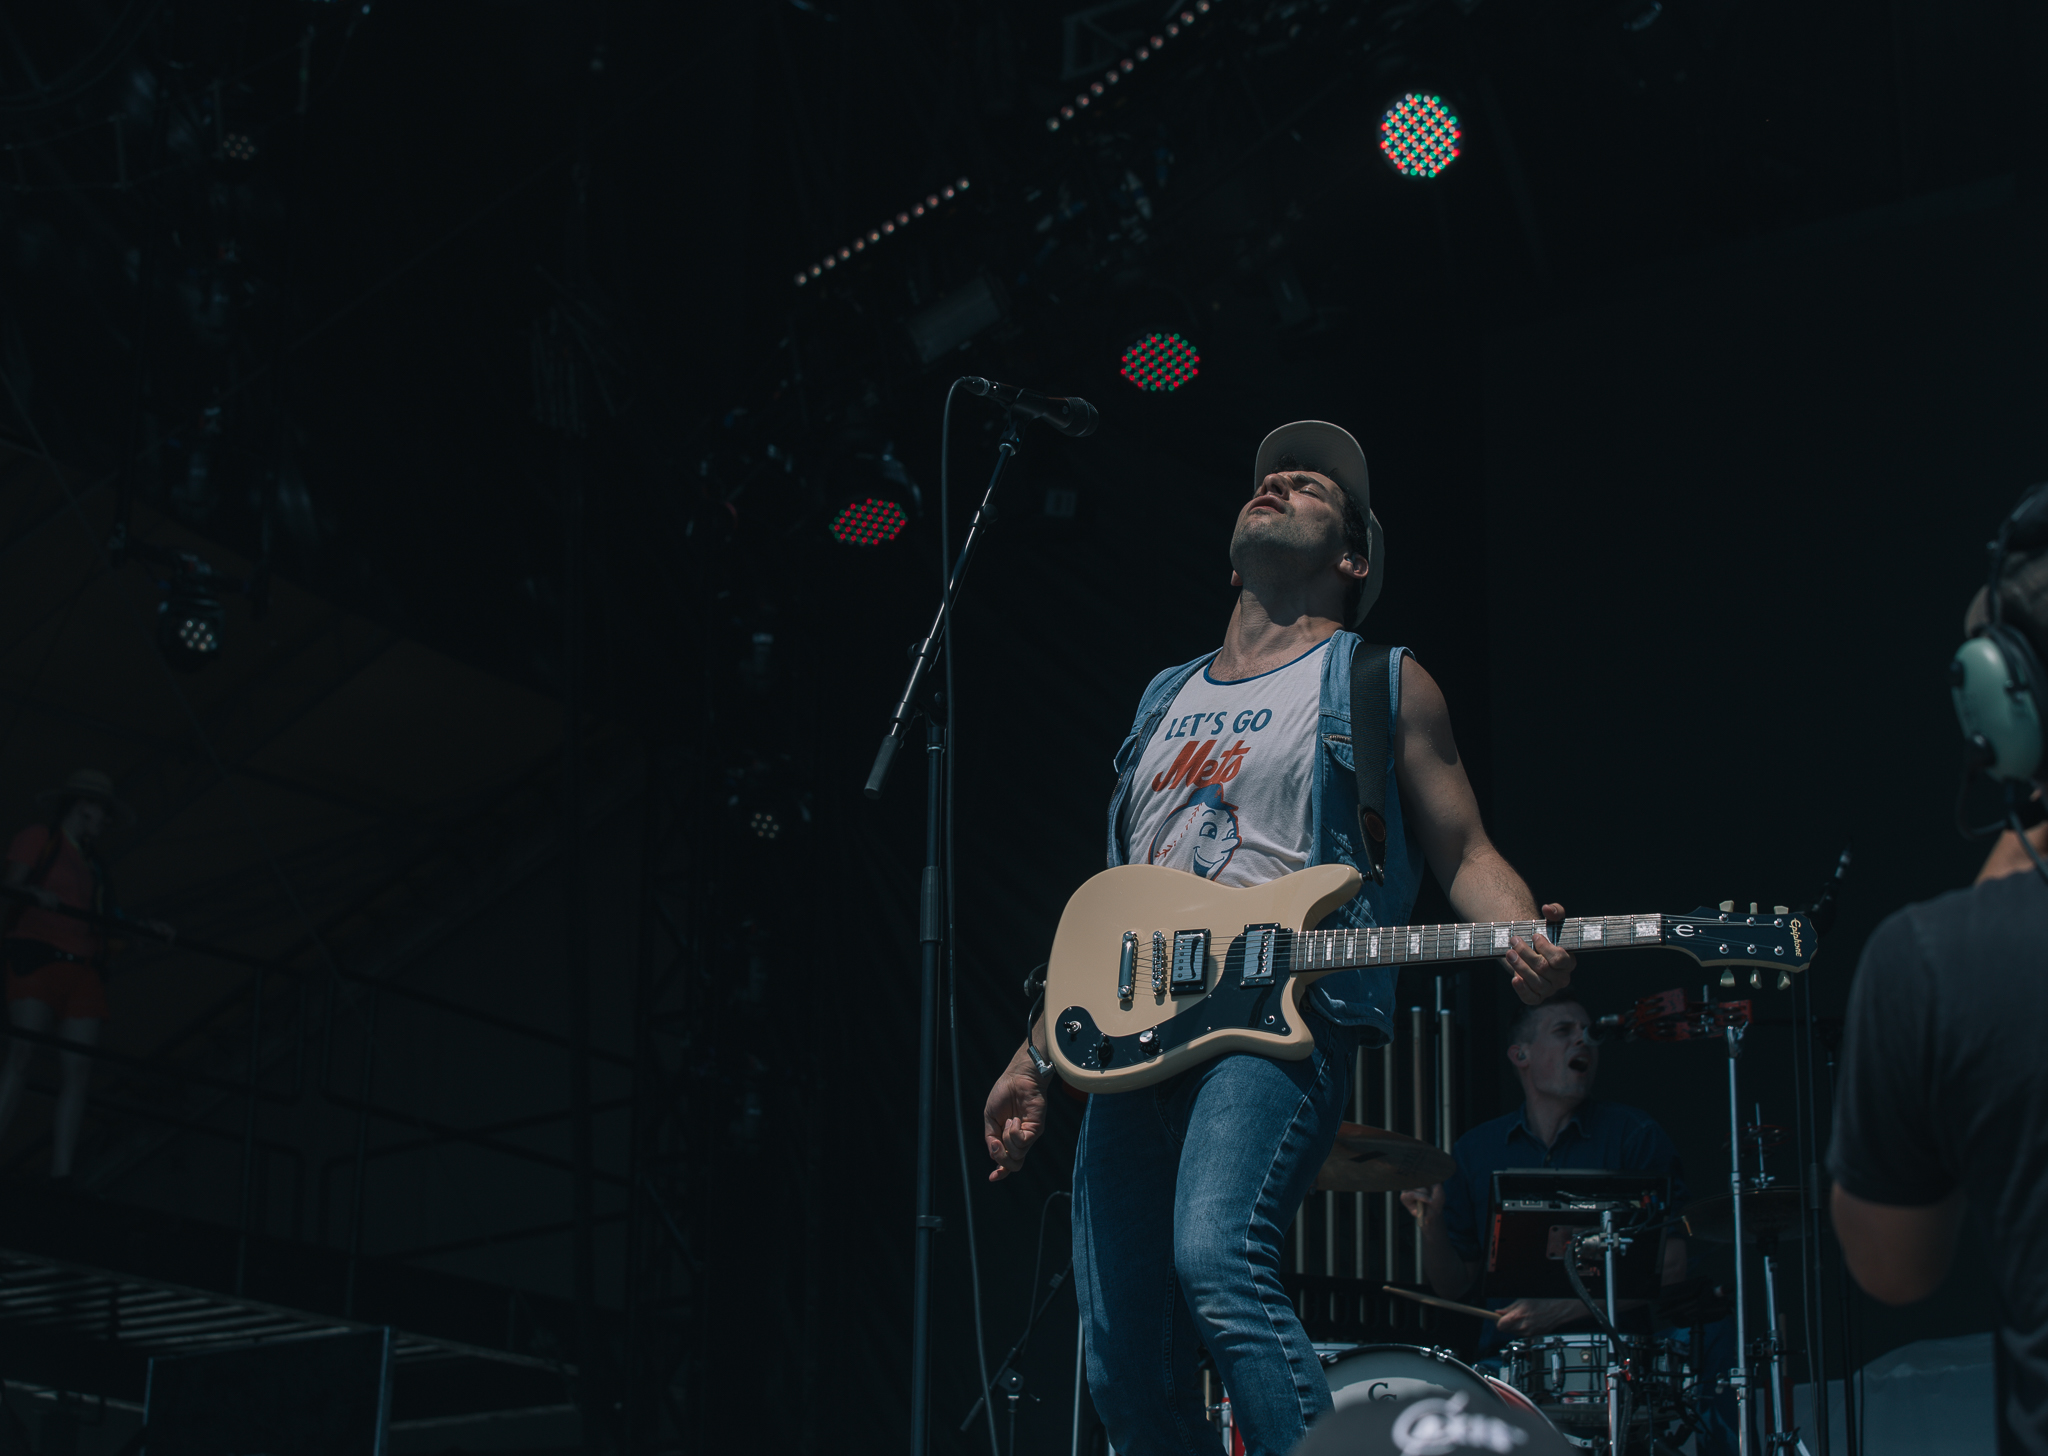 Laura Ord Photography | Austin, TX Concert Photography | Bleachers at Hangout Music Fest in Gulf Shores, AL